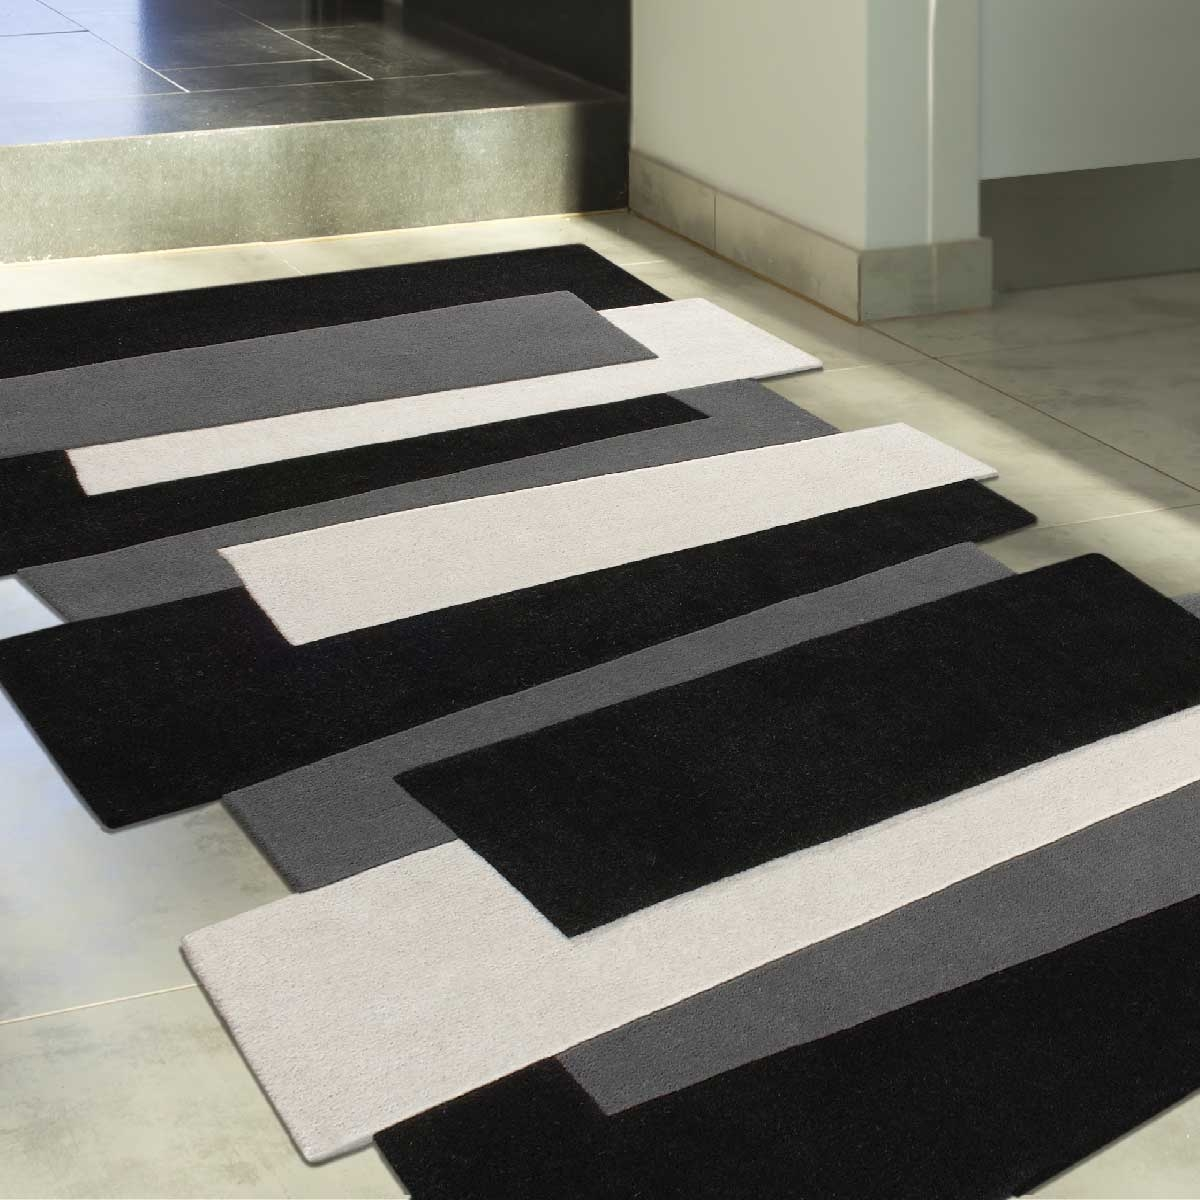 tapis salle de bain grande taille meilleures id es cr atives pour la conception de la maison. Black Bedroom Furniture Sets. Home Design Ideas